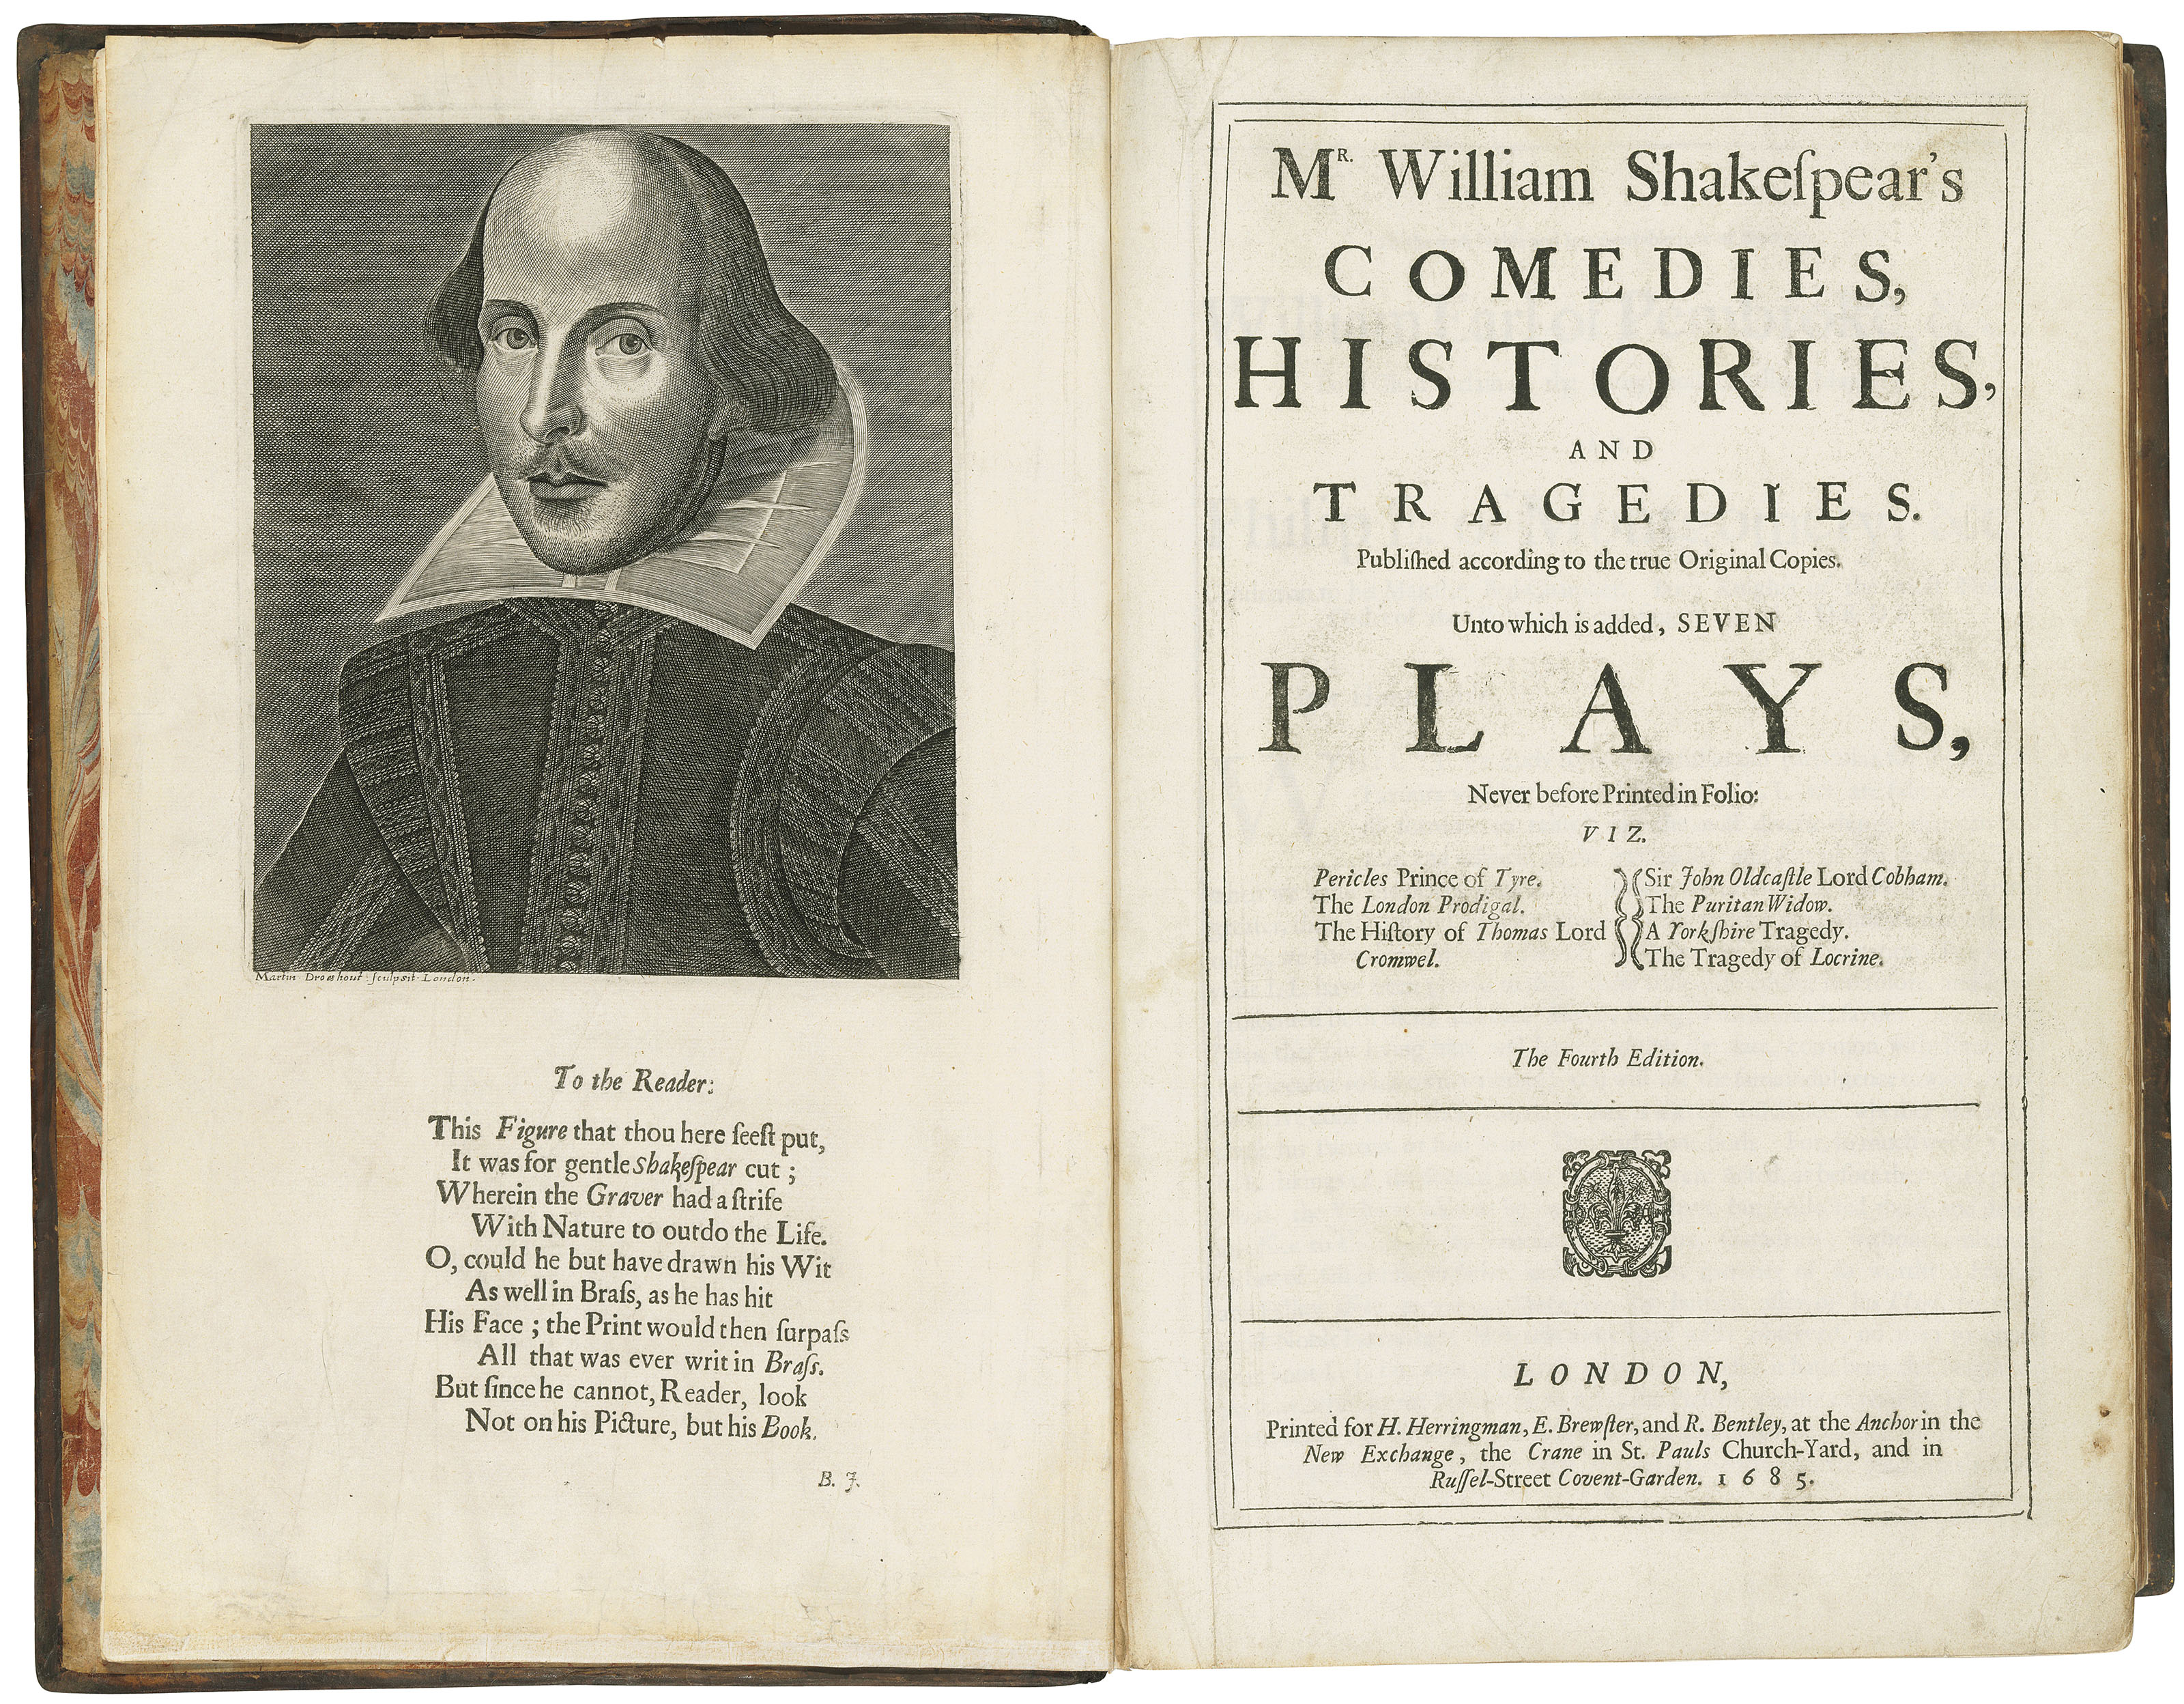 SHAKESPEARE, William (1564-1616). Comedies, Histories, and Tragedies. Published according to the true Original Copies. Unto which is added, Seven Plays, never before Printed in Folio. The Fourth edition. Edited by John Heminge (d. 1630) and Henry Condell (d. 1627), except for Pericles and six other plays added by the publisher of the Third Folio, Philip Chetwind (d. 1680). London: Printed [by Robert Roberts and others] for H. Herringman, E. Brewster, and R. Bentley, 1685.